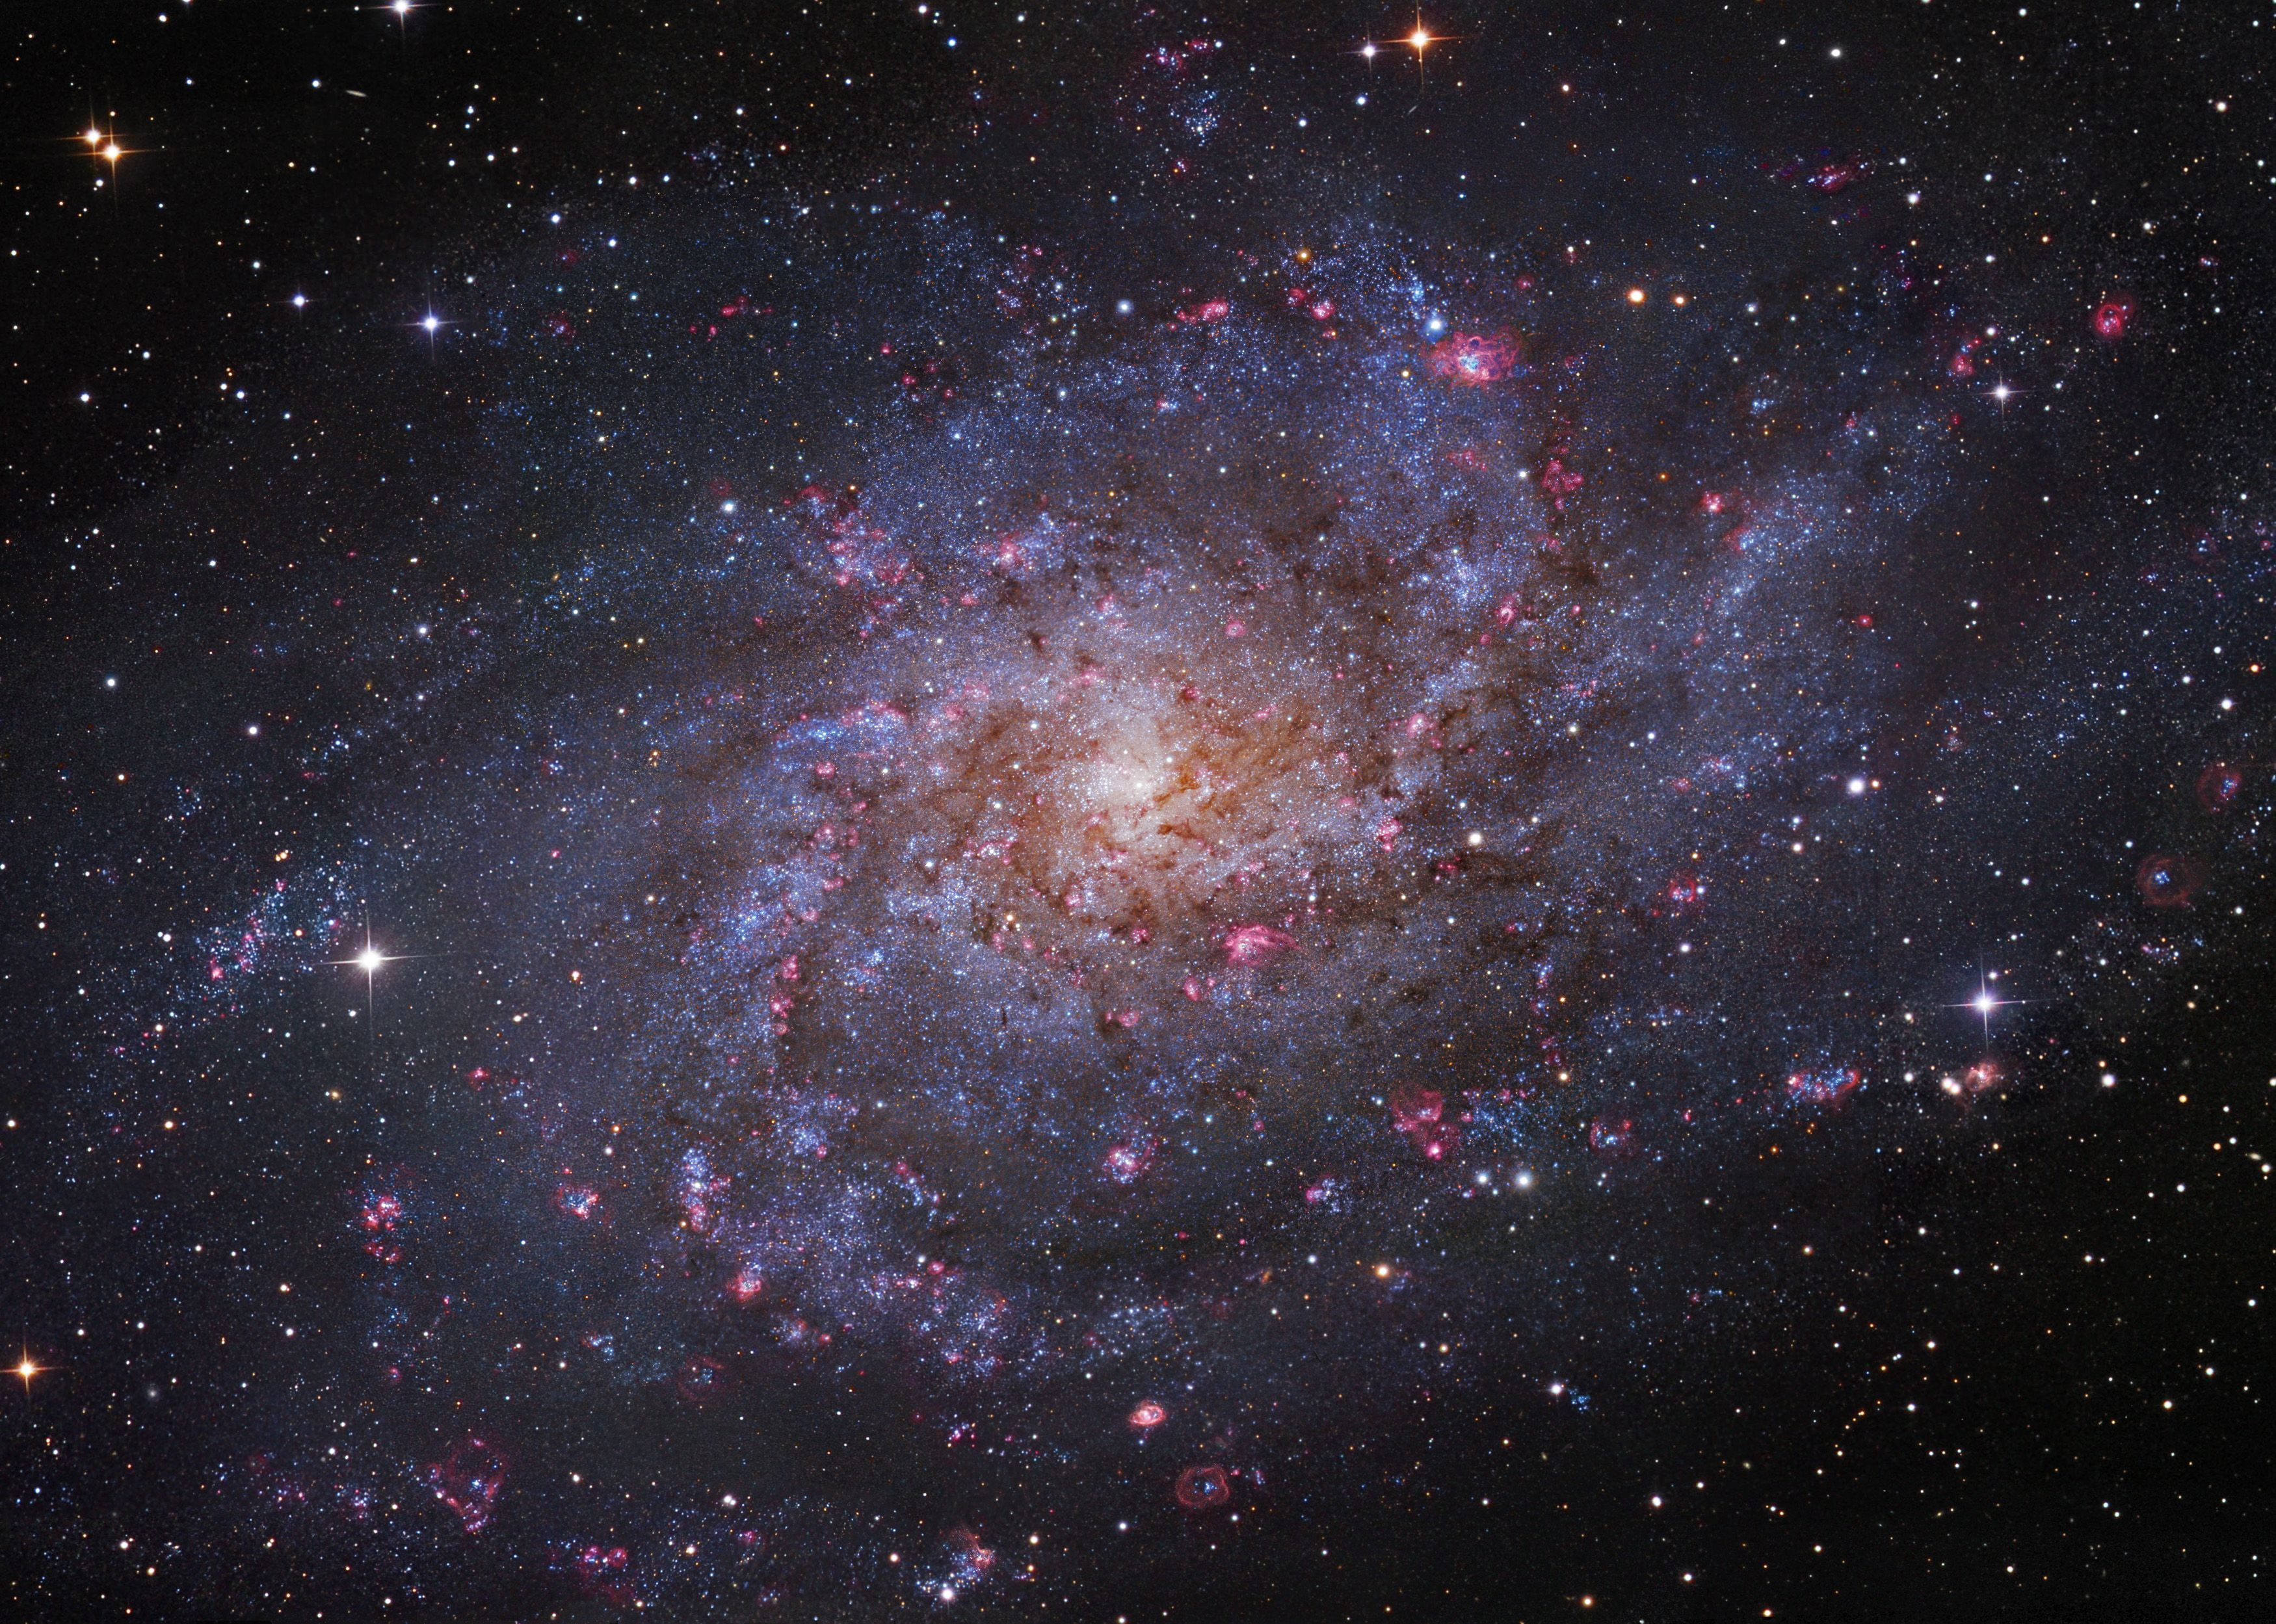 M33 Triangulum Galaxy The Small Northern Constellation Triangulum Harbors This Magnificent Face On Spiral Gala Triangulum Galaxy Spiral Galaxy Galaxy Images